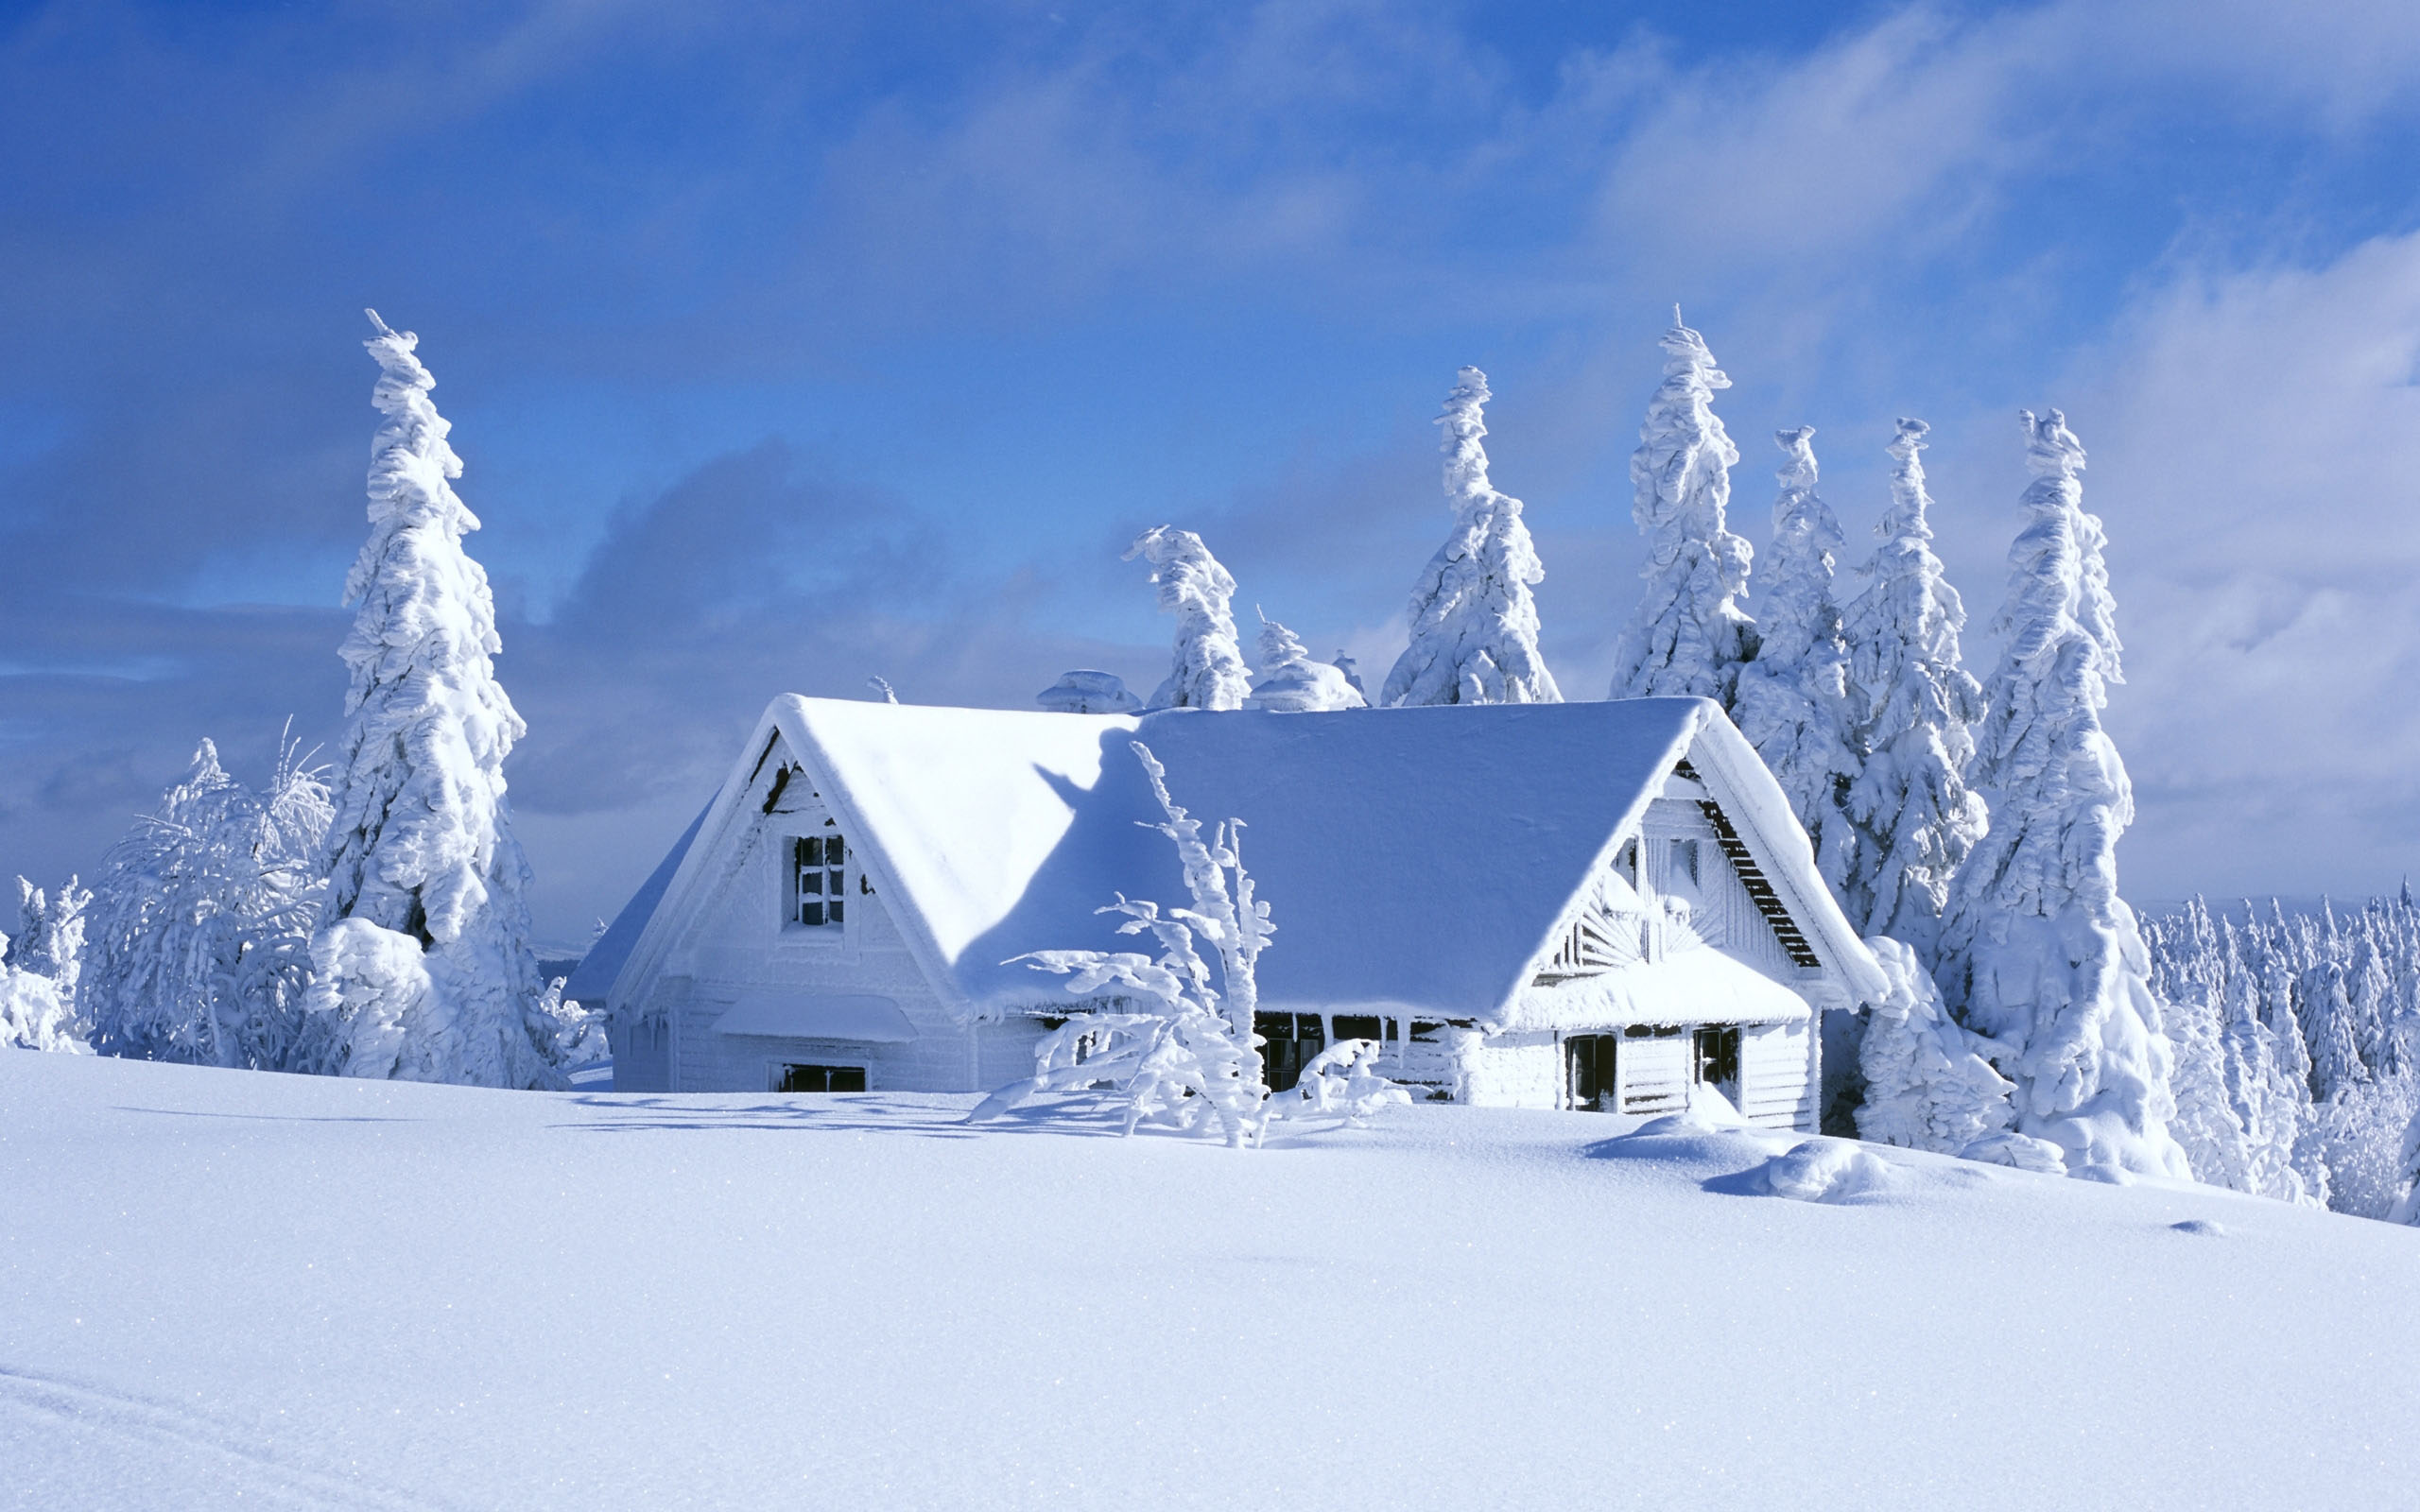 House Covered With Snow In Winter HD Wallpapers 2560x1600